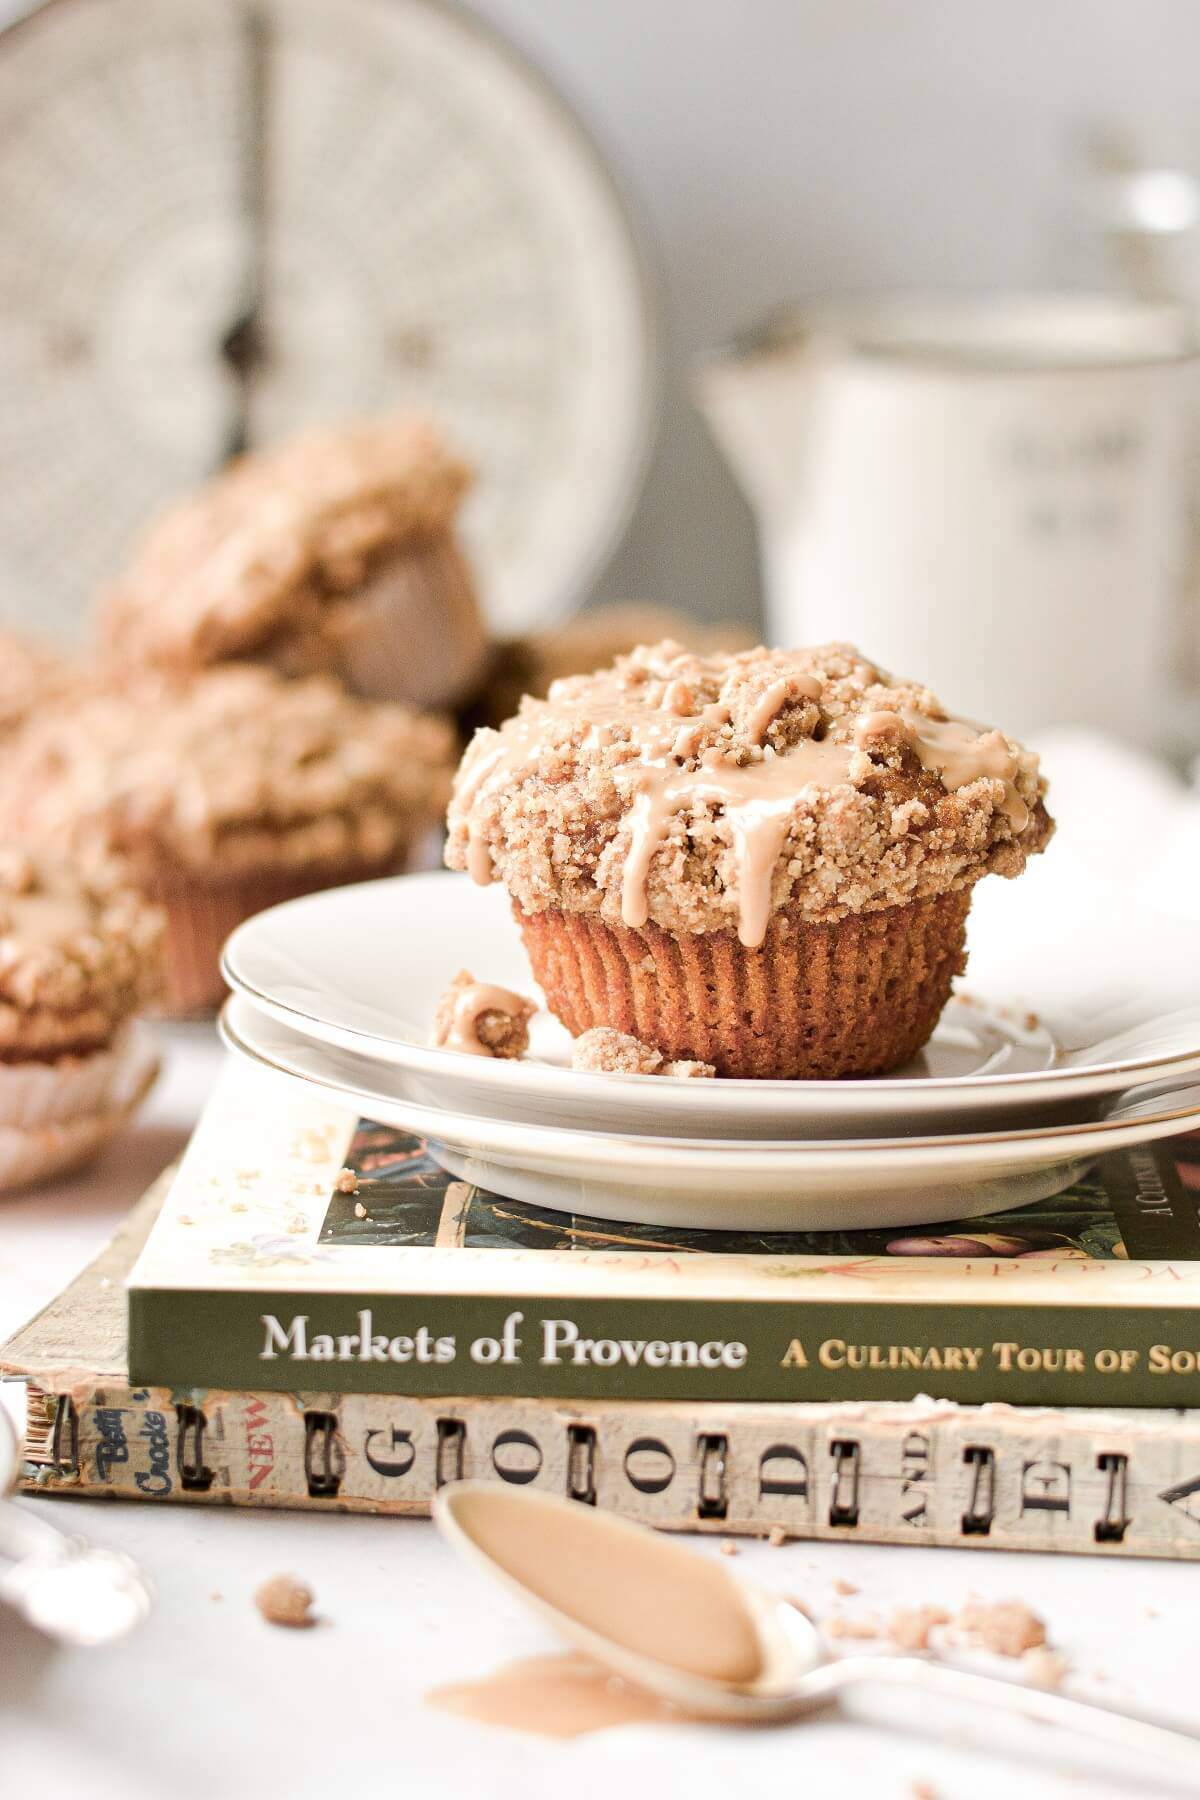 A sweet potato crumb muffin, on a stack of plates, sitting on a cookbook.